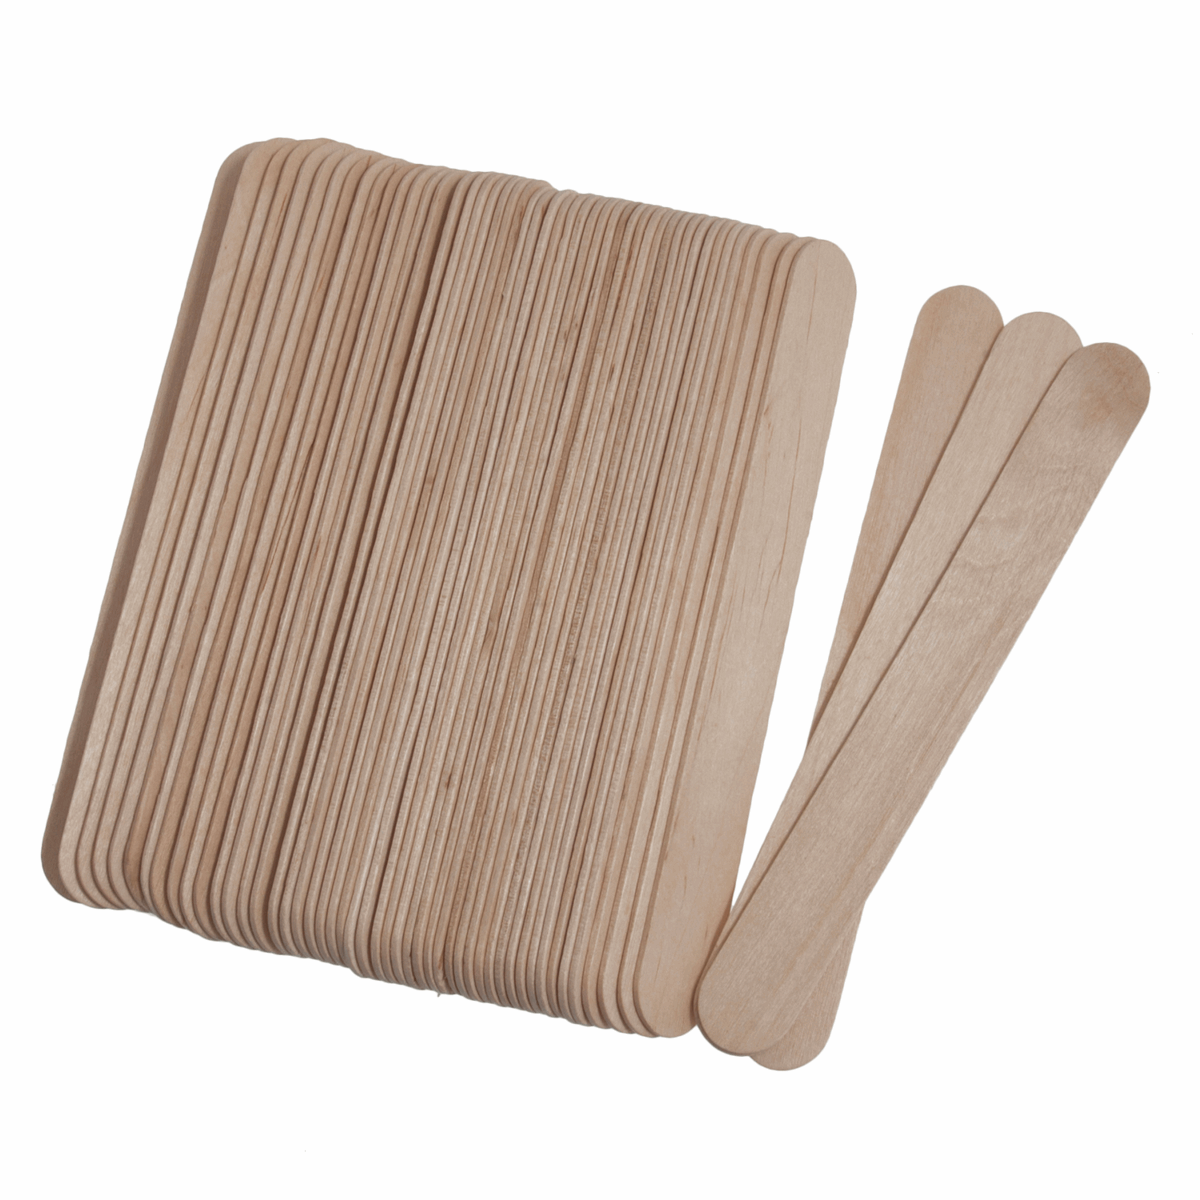 Picture of Lollypop Sticks: Wooden: Large: 150 x 18 x 1.6mm: Natural: Pack of 50